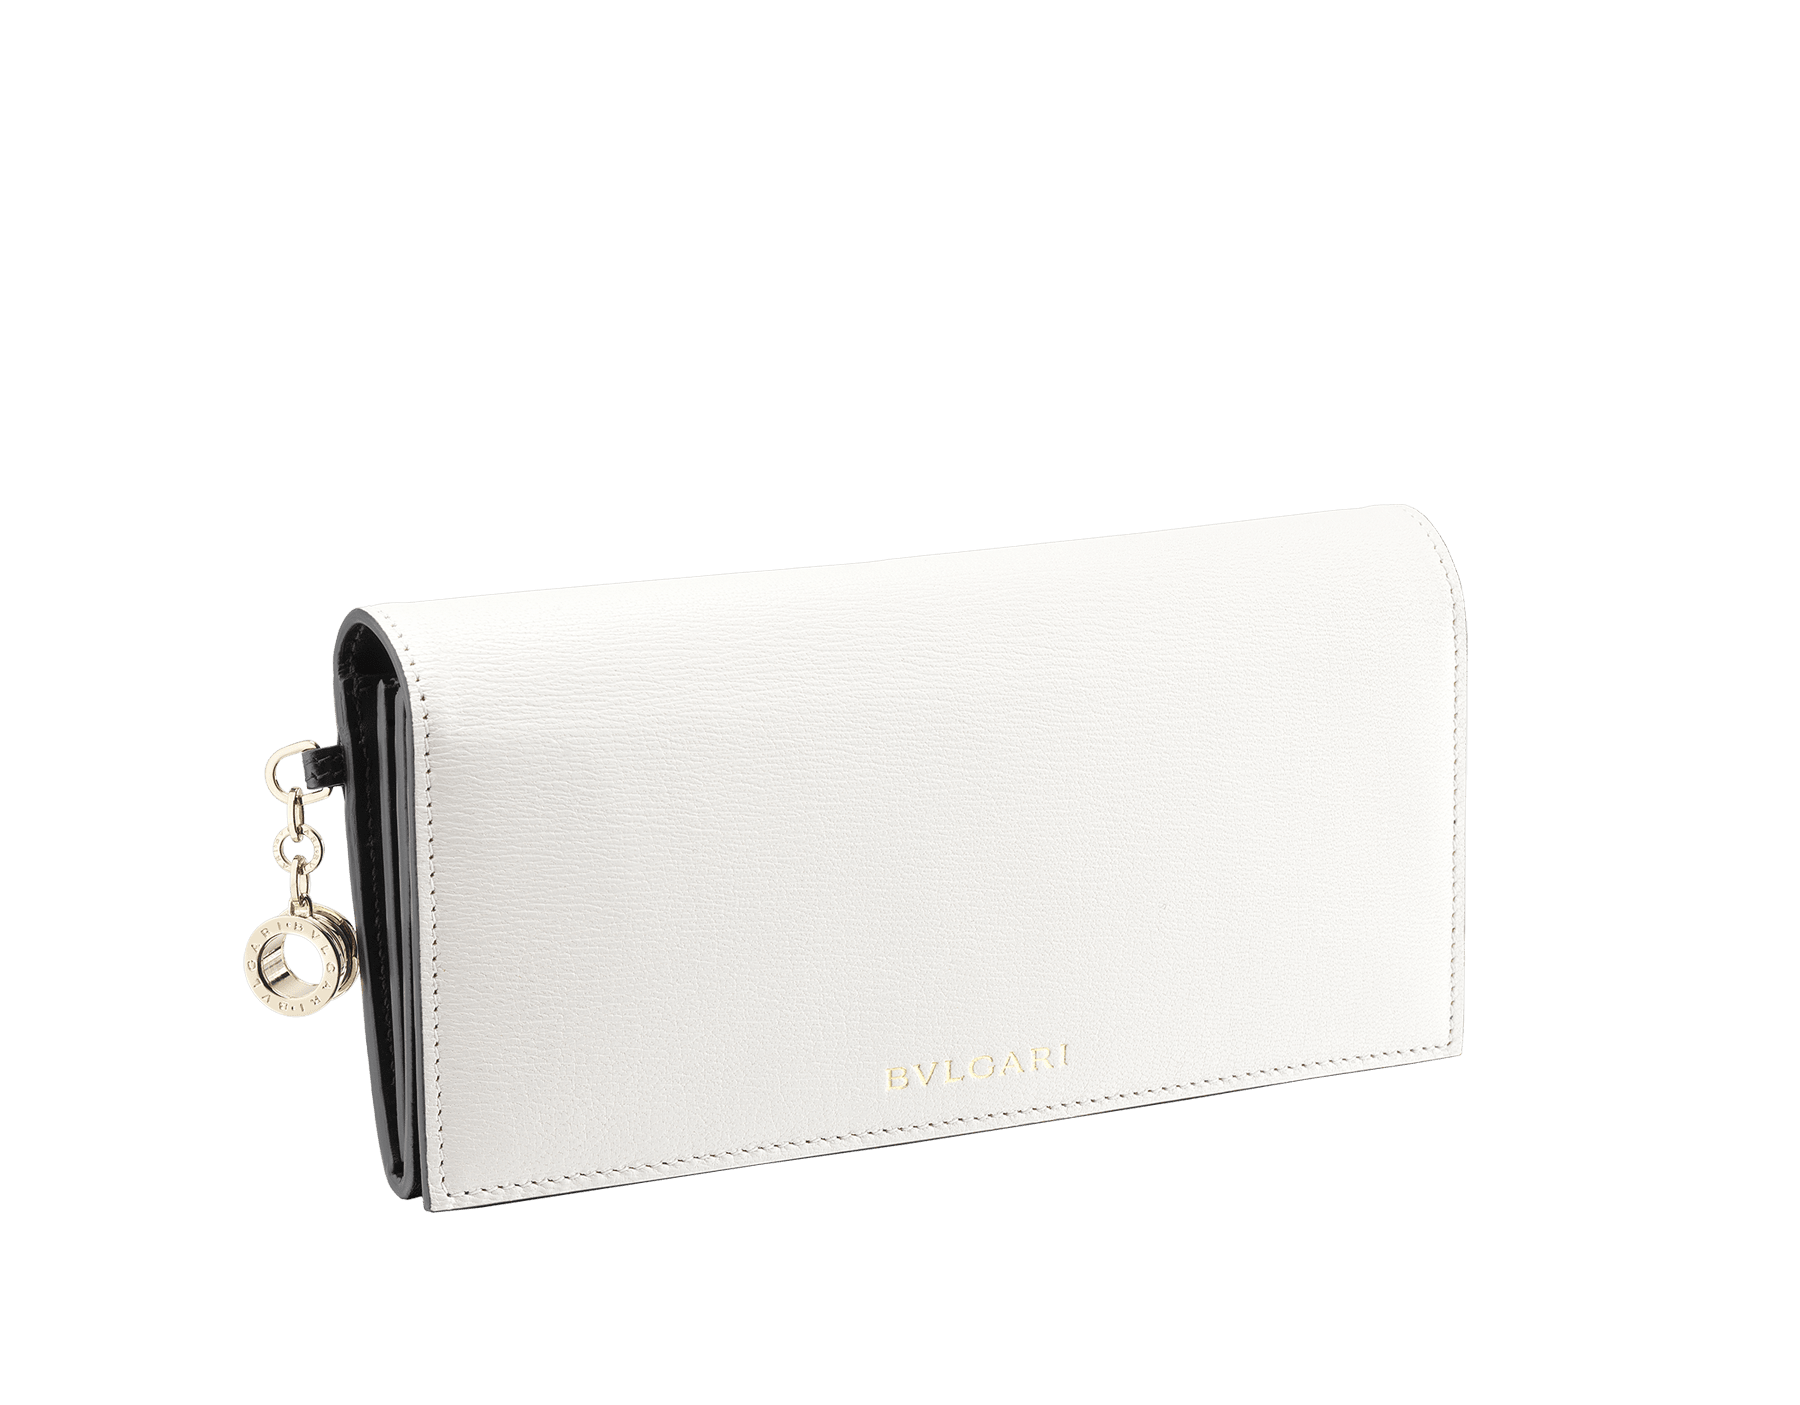 B.zero1 wallet pochette in white and black goatskin. Iconic B.zero1 charm in light gold plated brass and closure clip. 288231 image 1